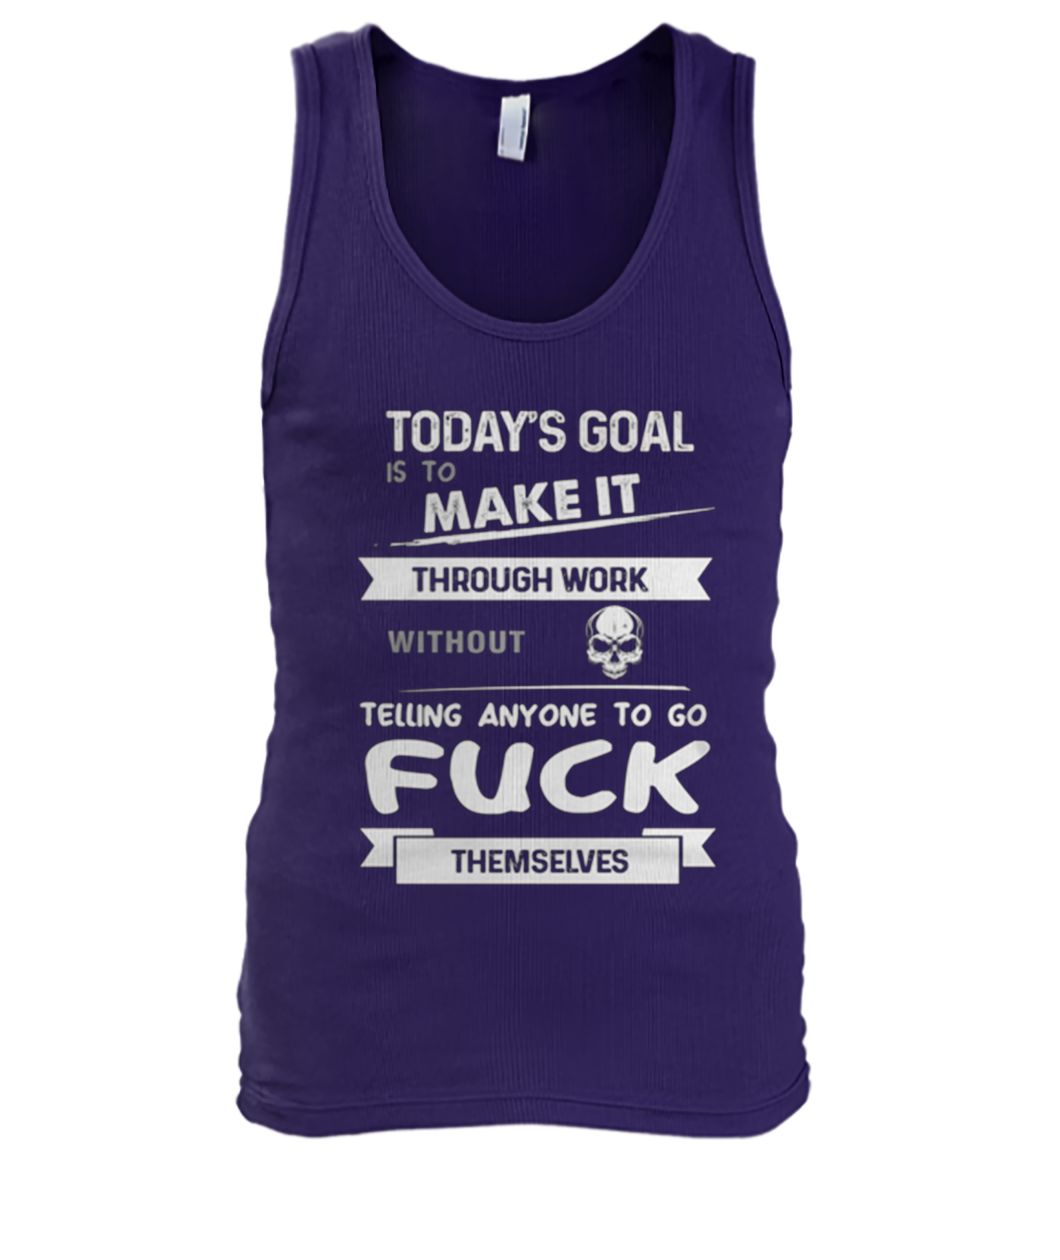 Today's goal is to make it through work without skull men's tank top